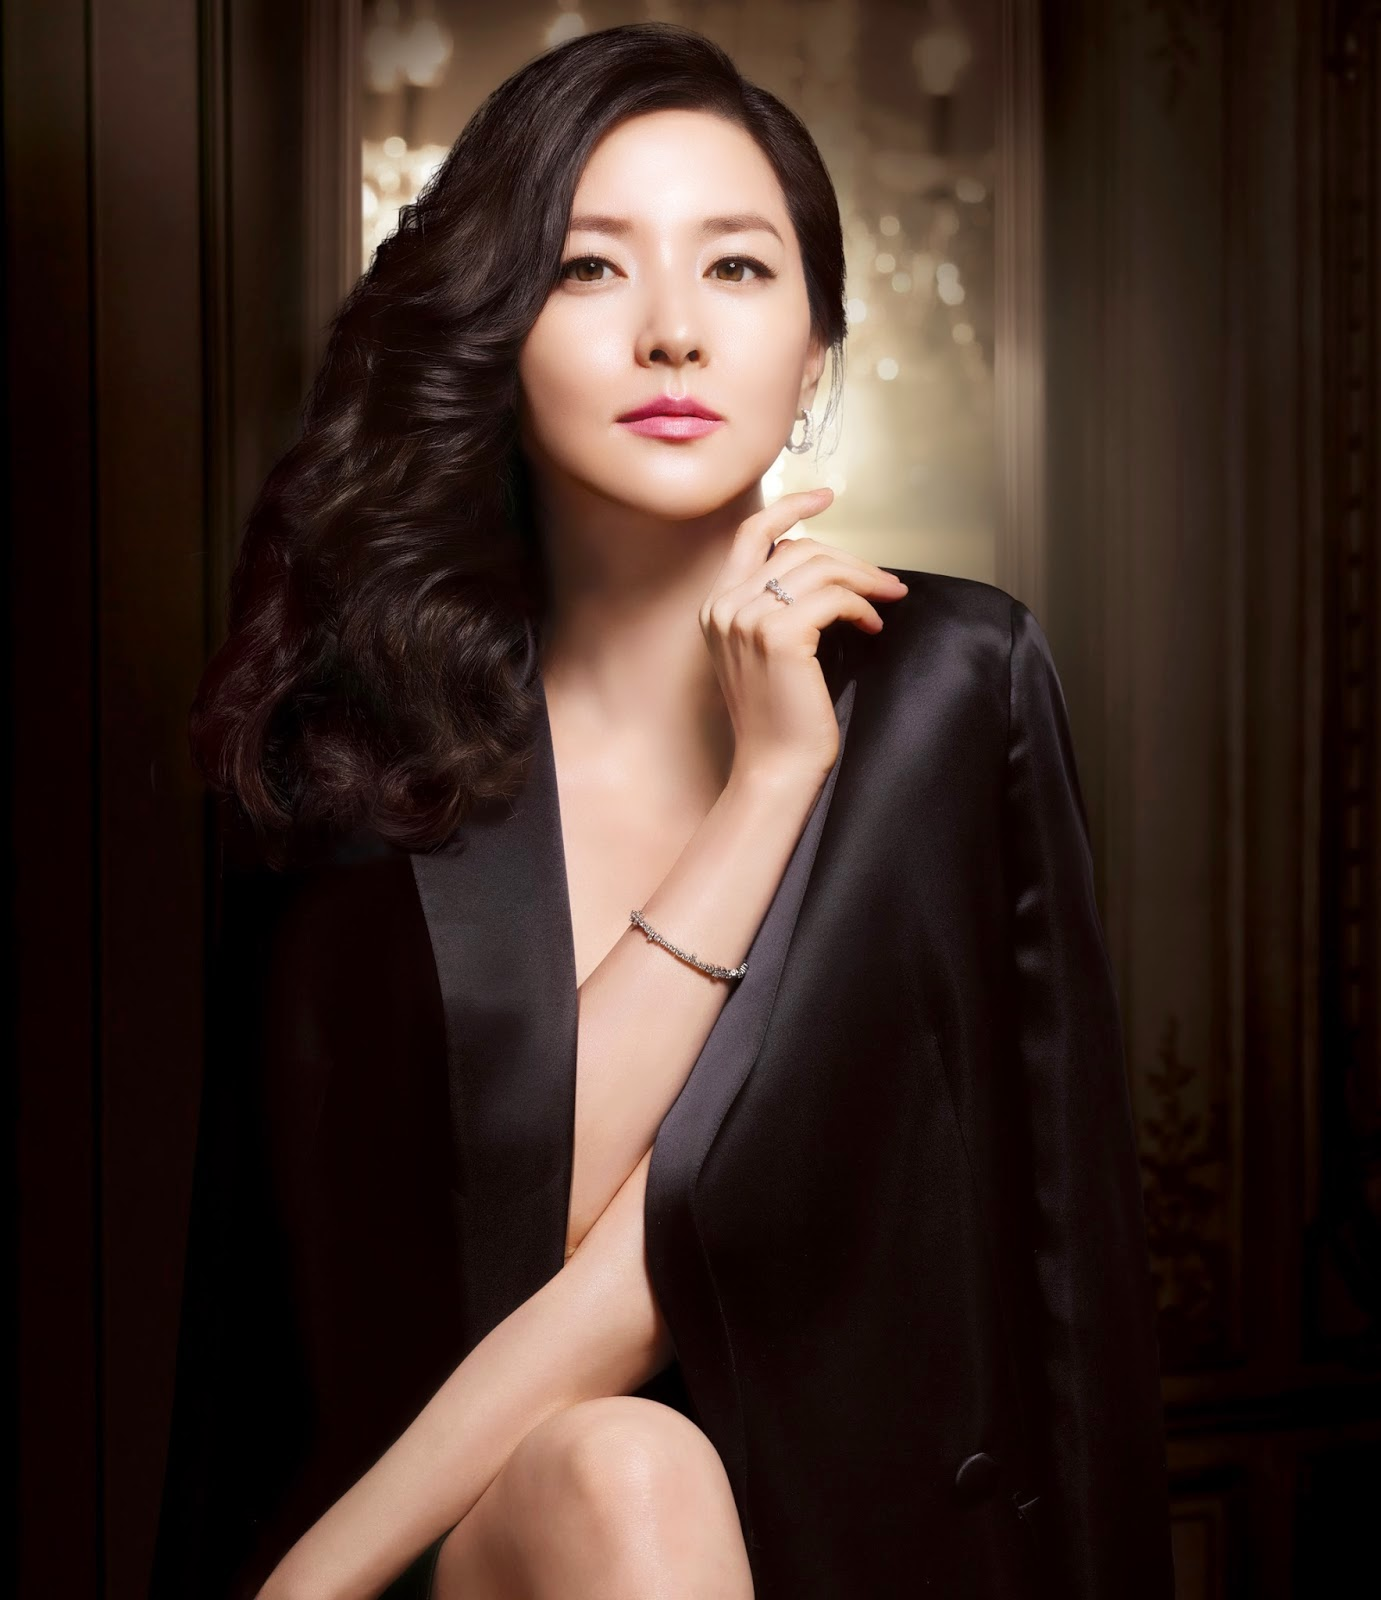 「Lee Young Ae 李英愛 이영애」の画像検索結果   Lee Young Ae 李 英愛 이영애; 大長今